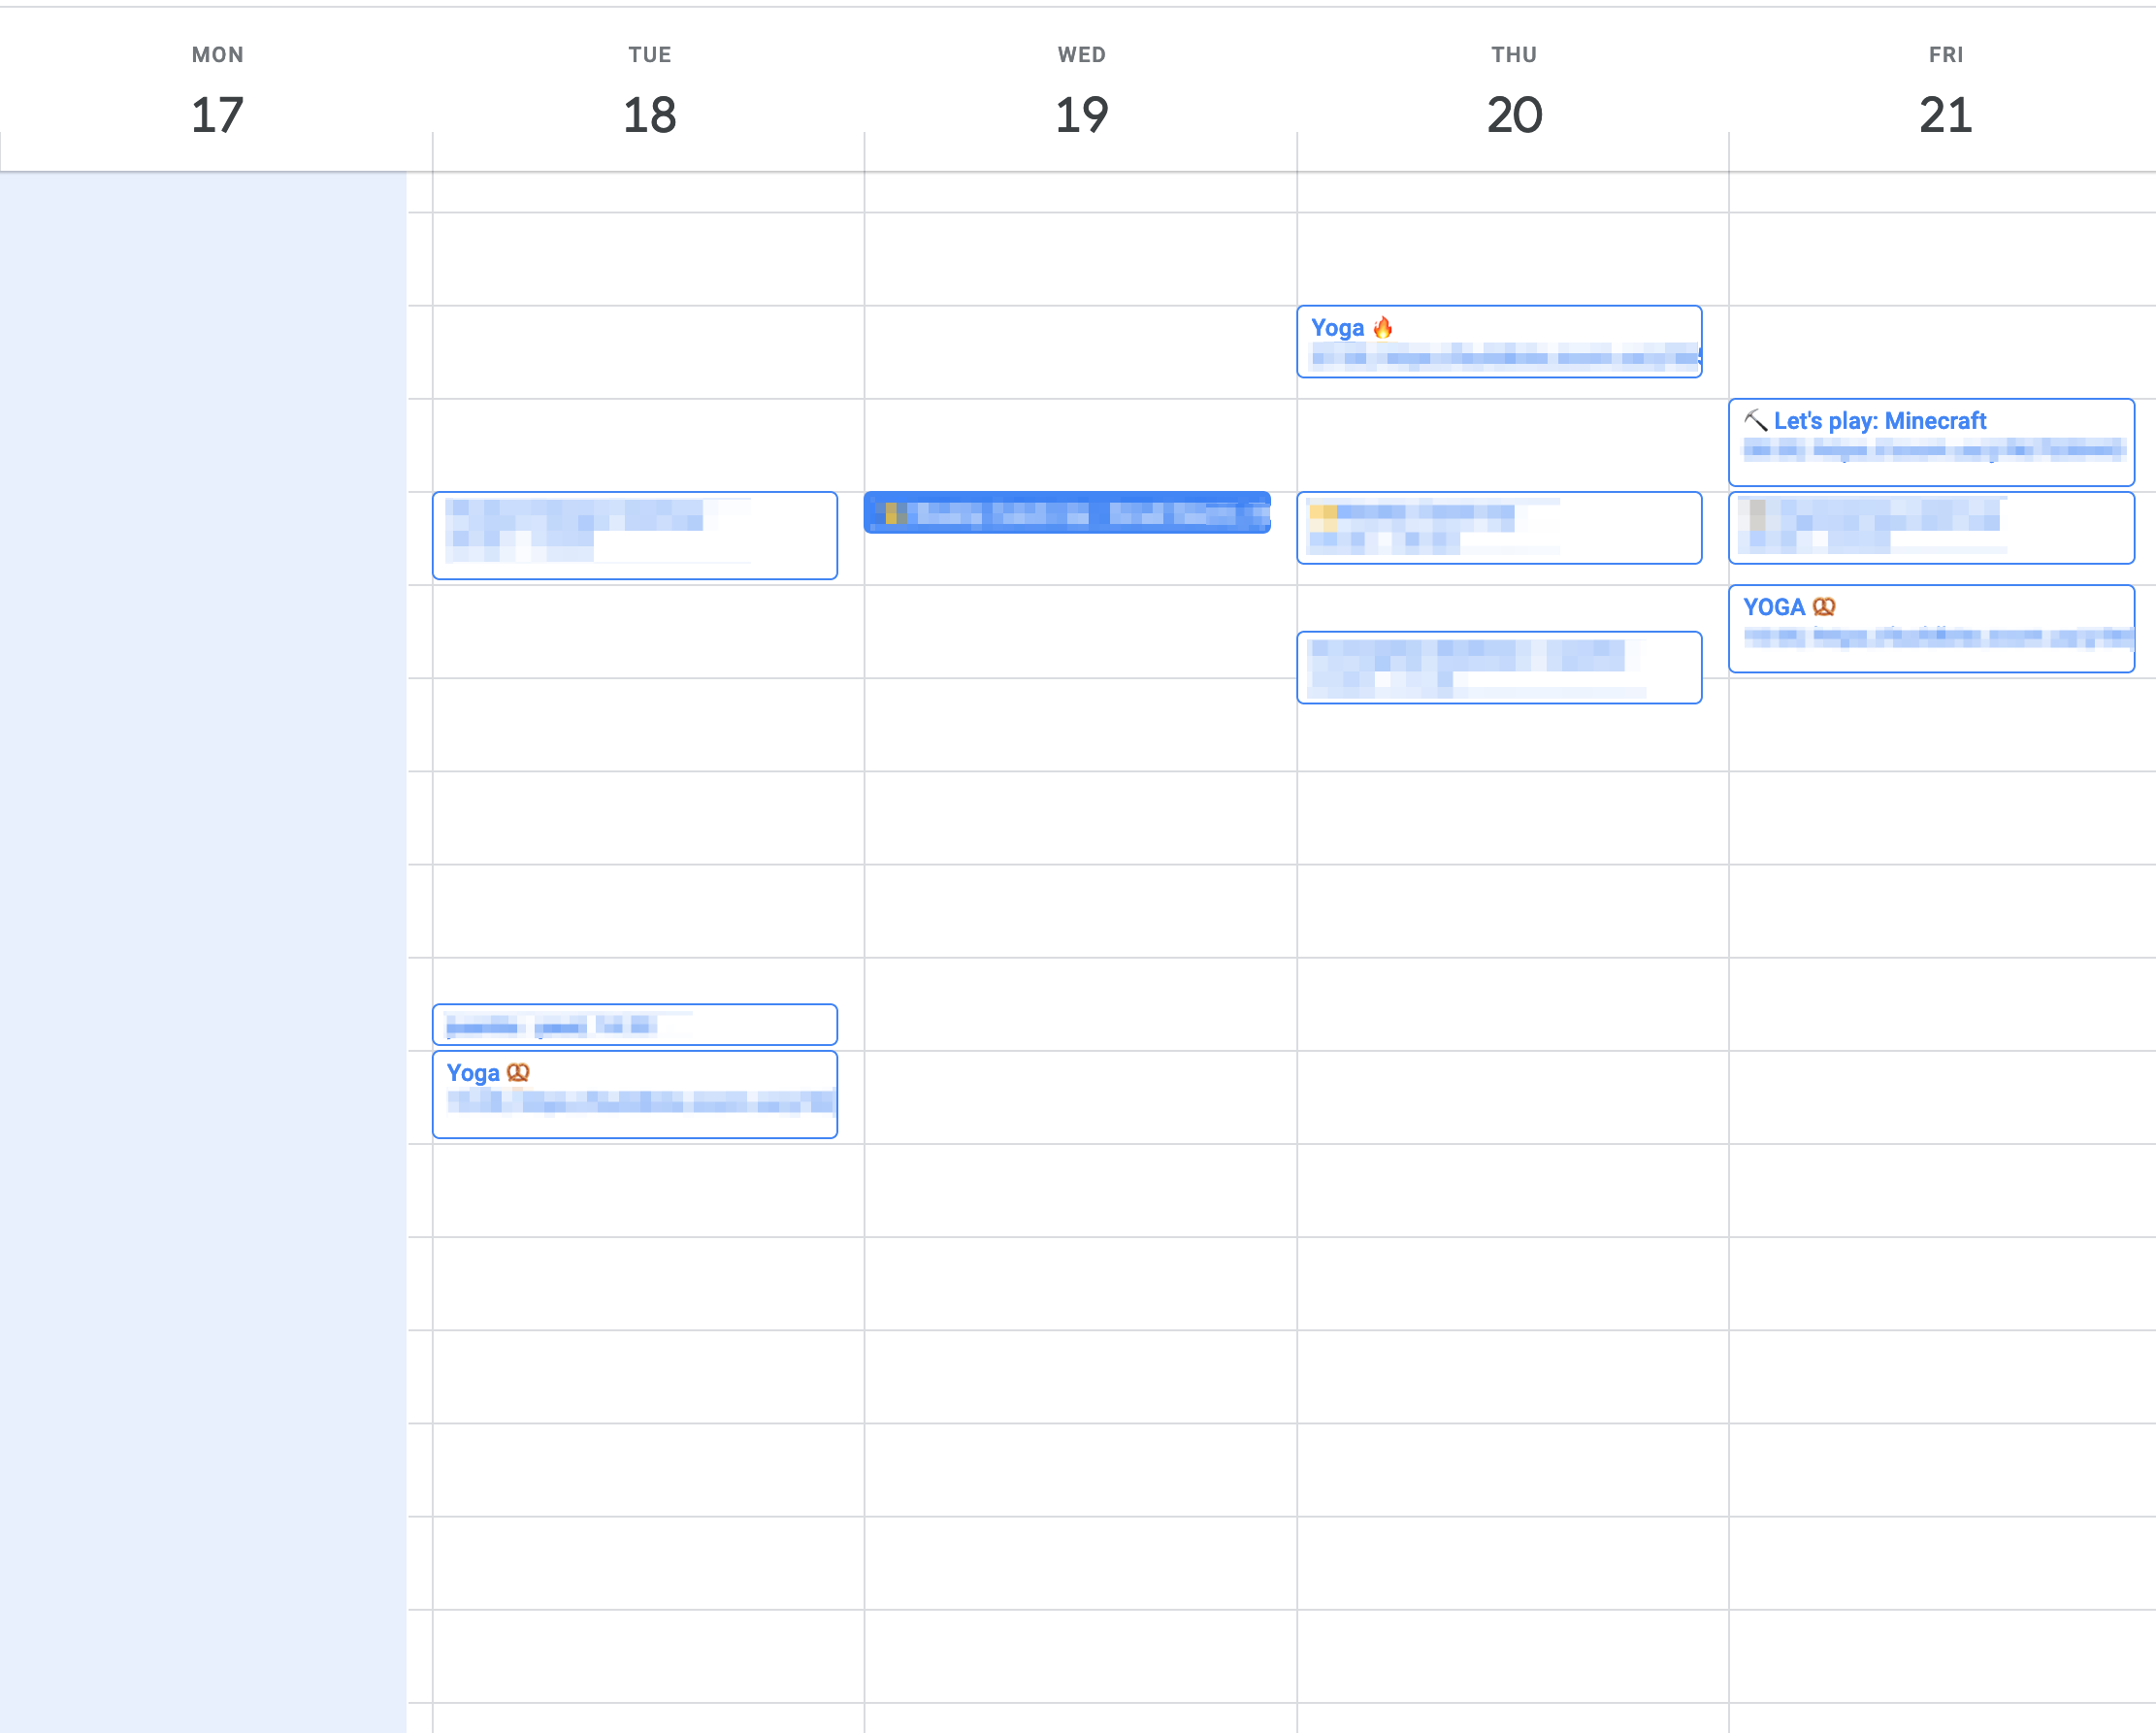 What my calendar looks like in a week. Note I am not an management role.